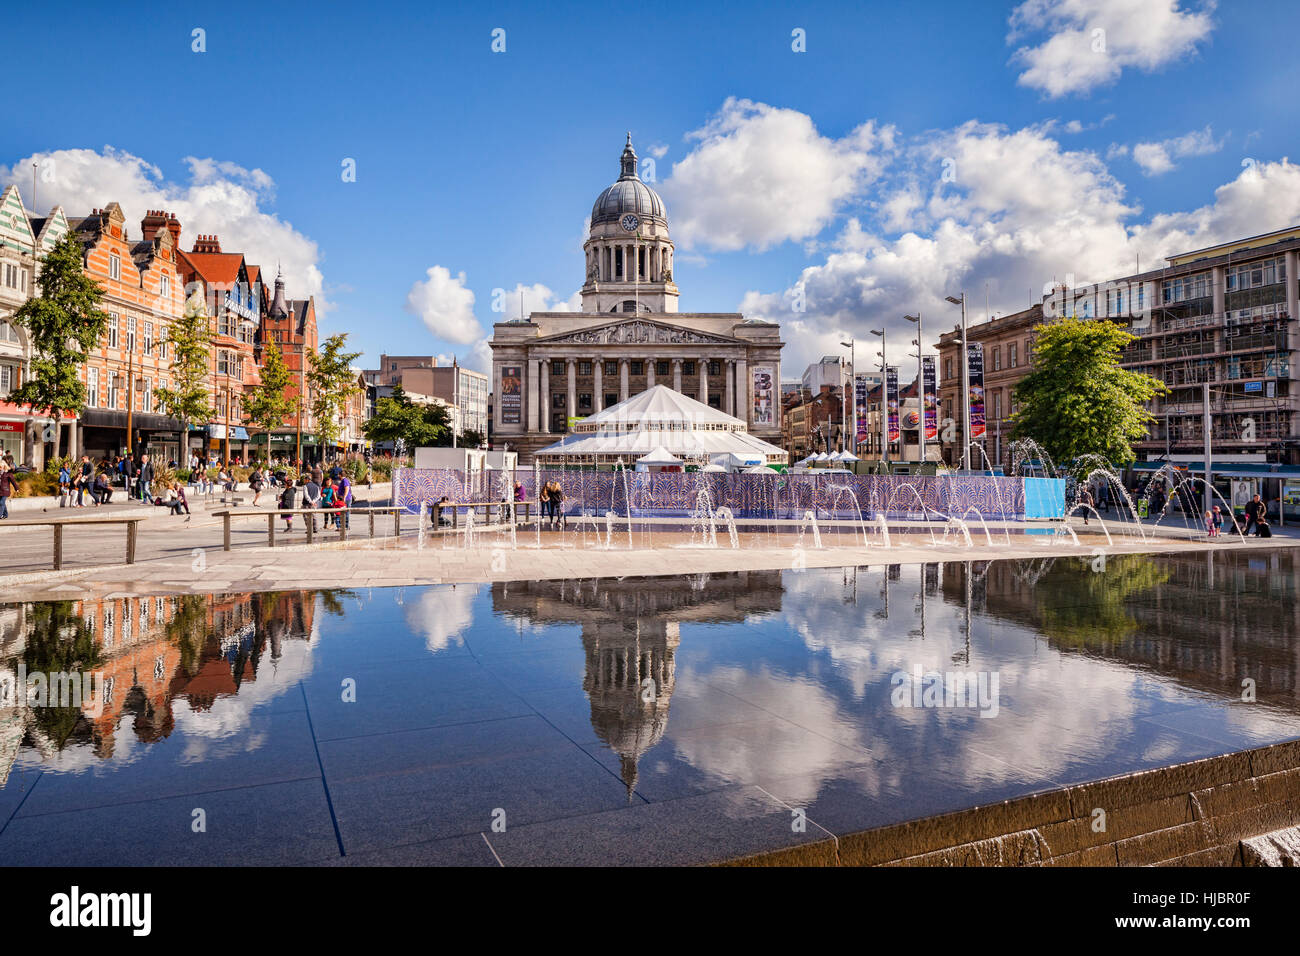 Market Square, Nottingham, England, UK - Stock Image